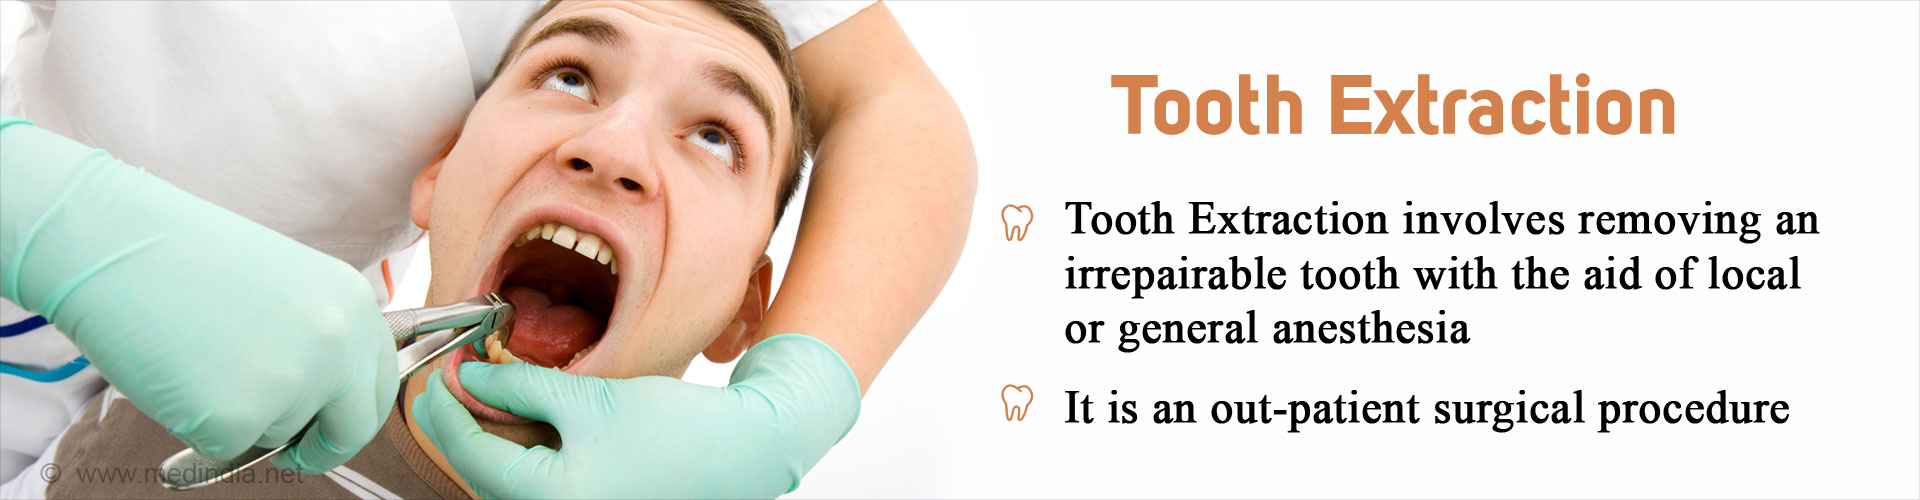 Dental ⁄ Tooth Extraction